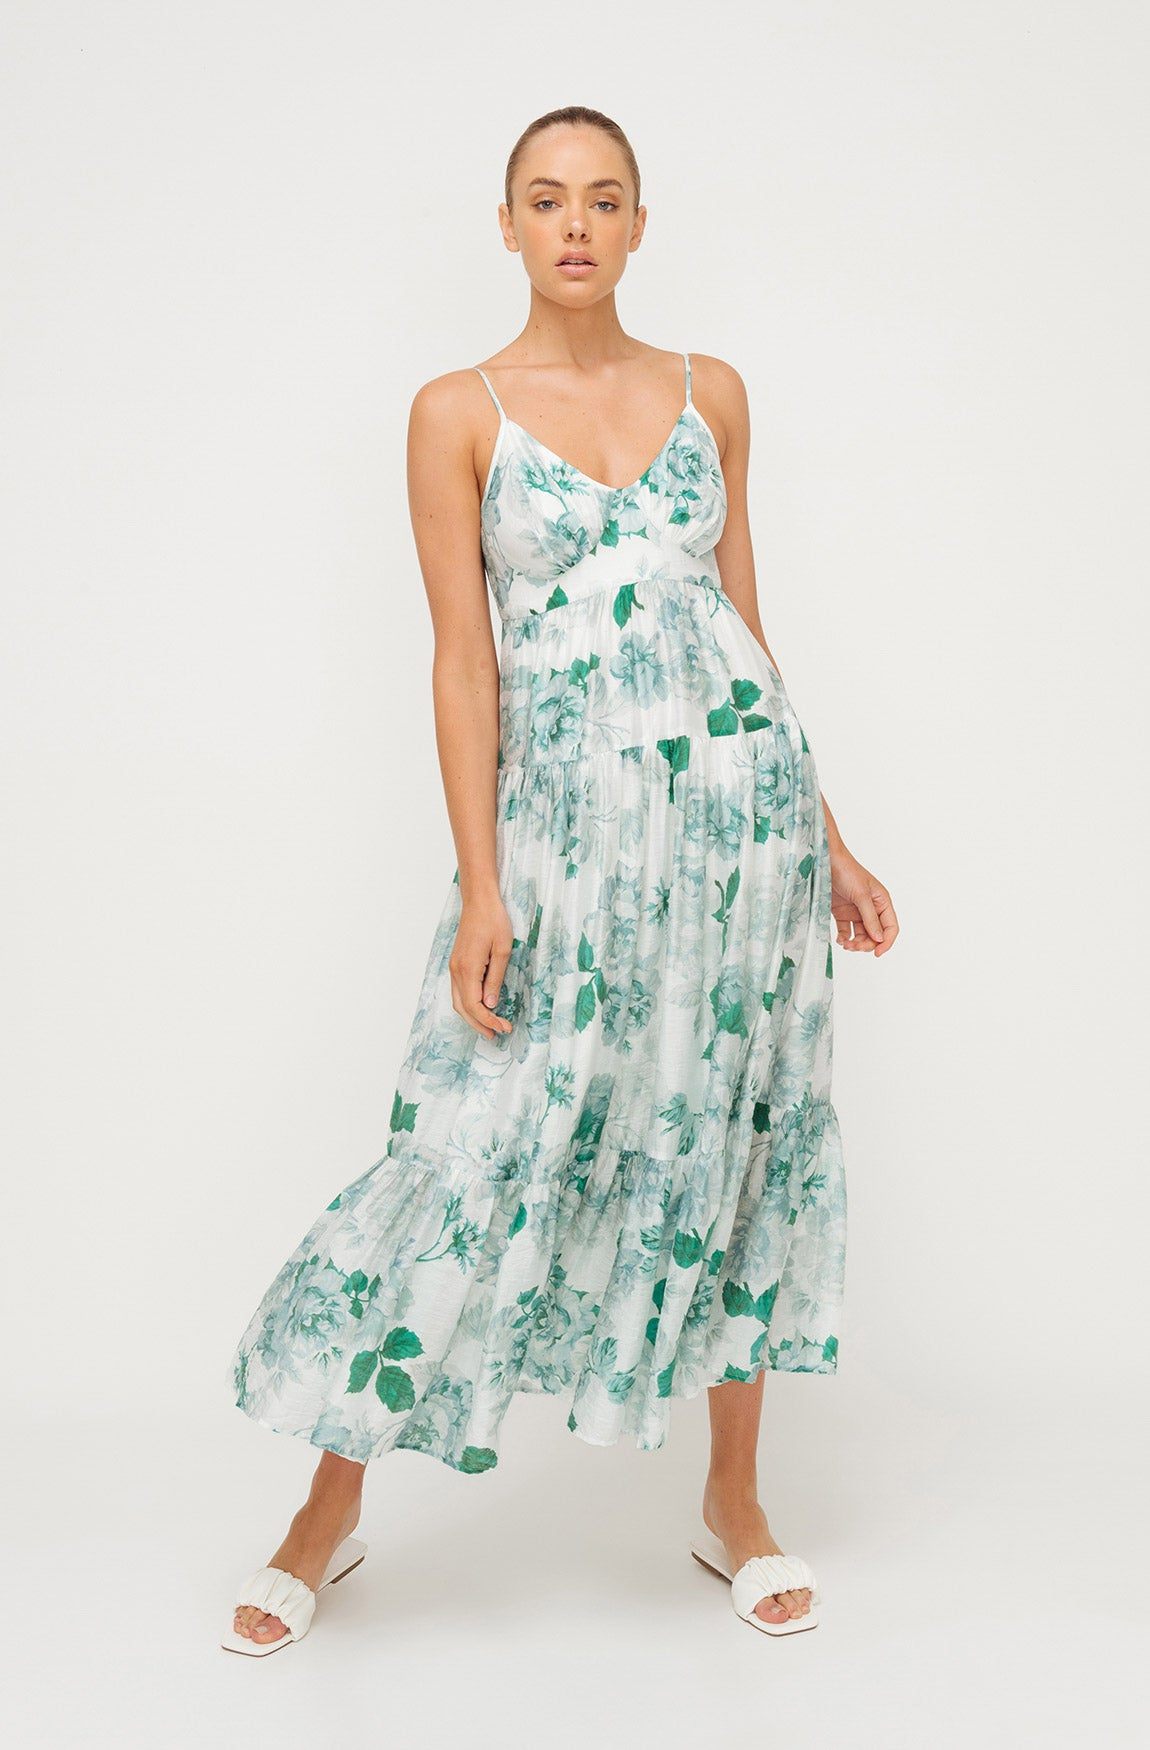 ATLANTIC FLORAL DRESS